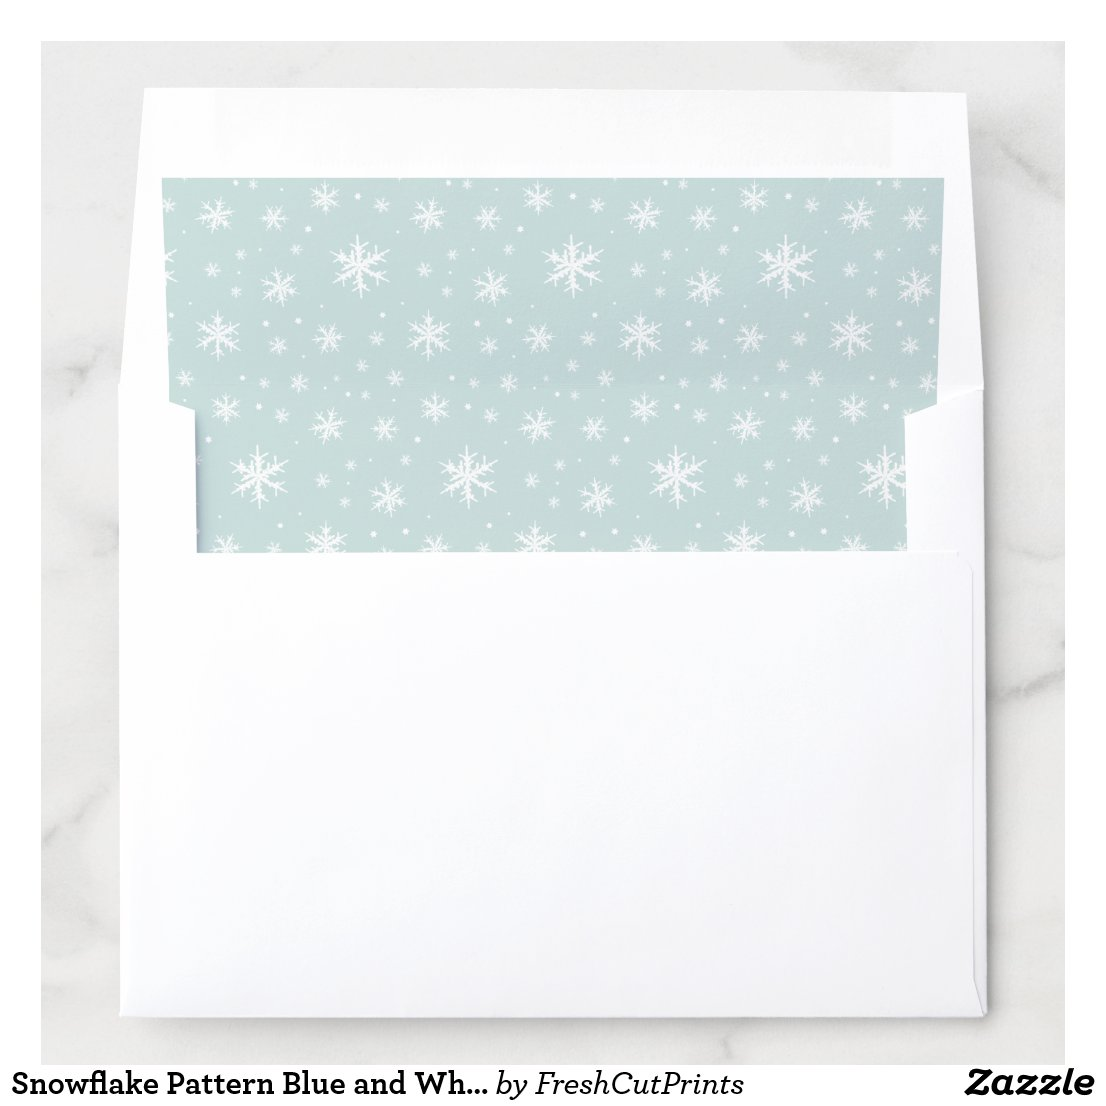 Snowflake Pattern Blue and White Winter Holiday Envelope Liner